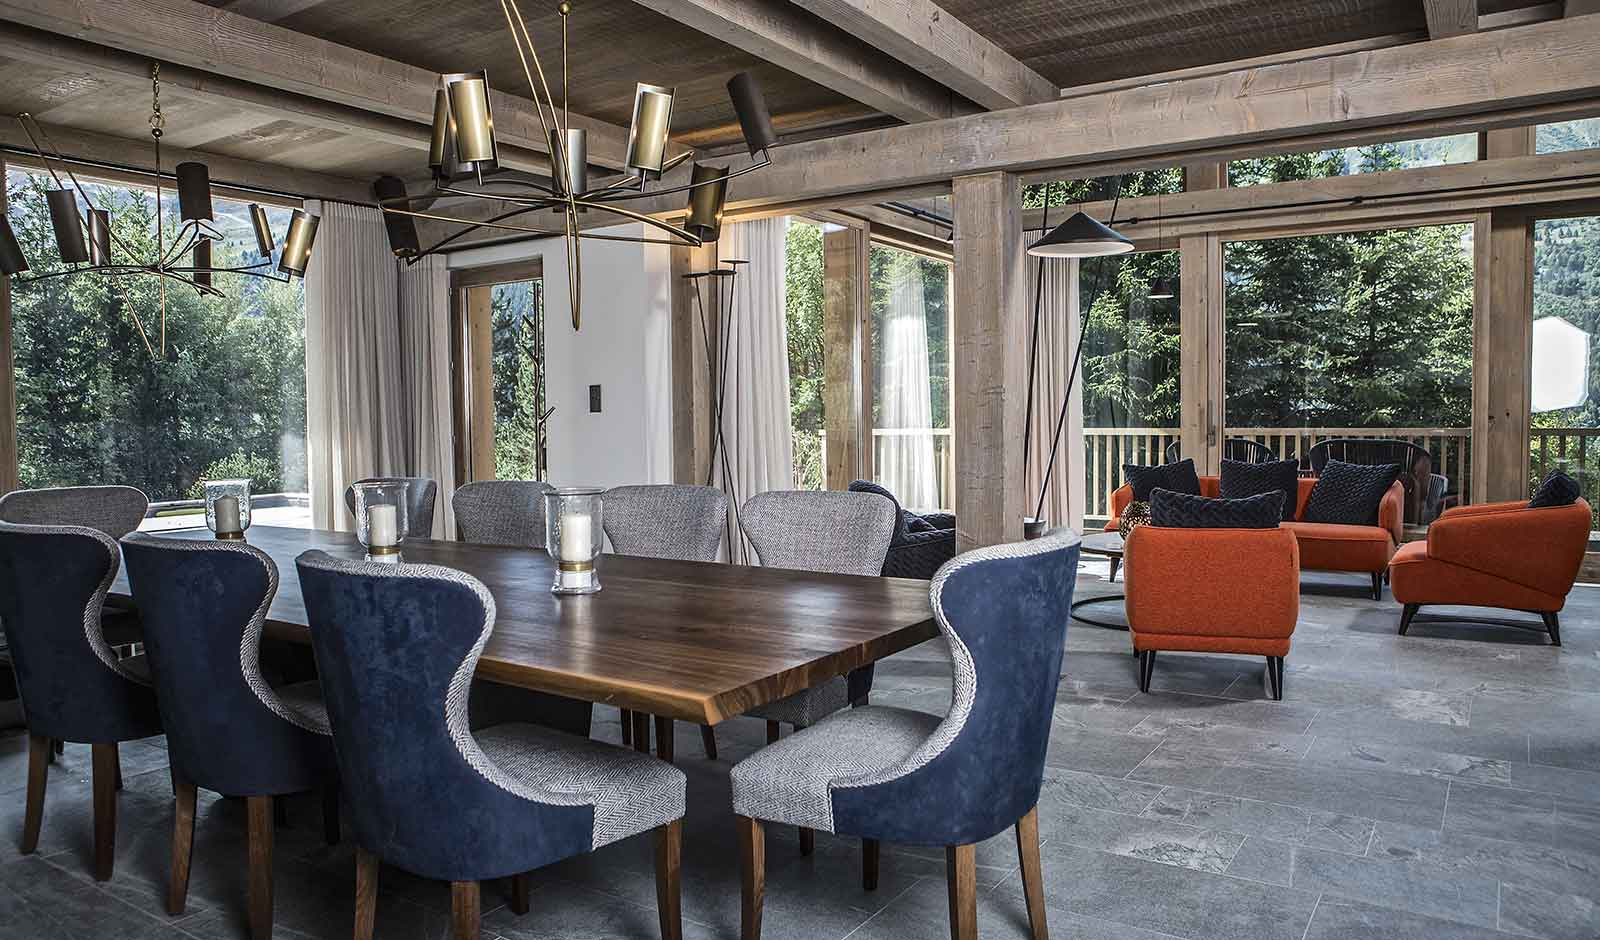 chalet-alpaca-7-atelier-crea-and-co-architecte-design-project-manager-meribel-savoie